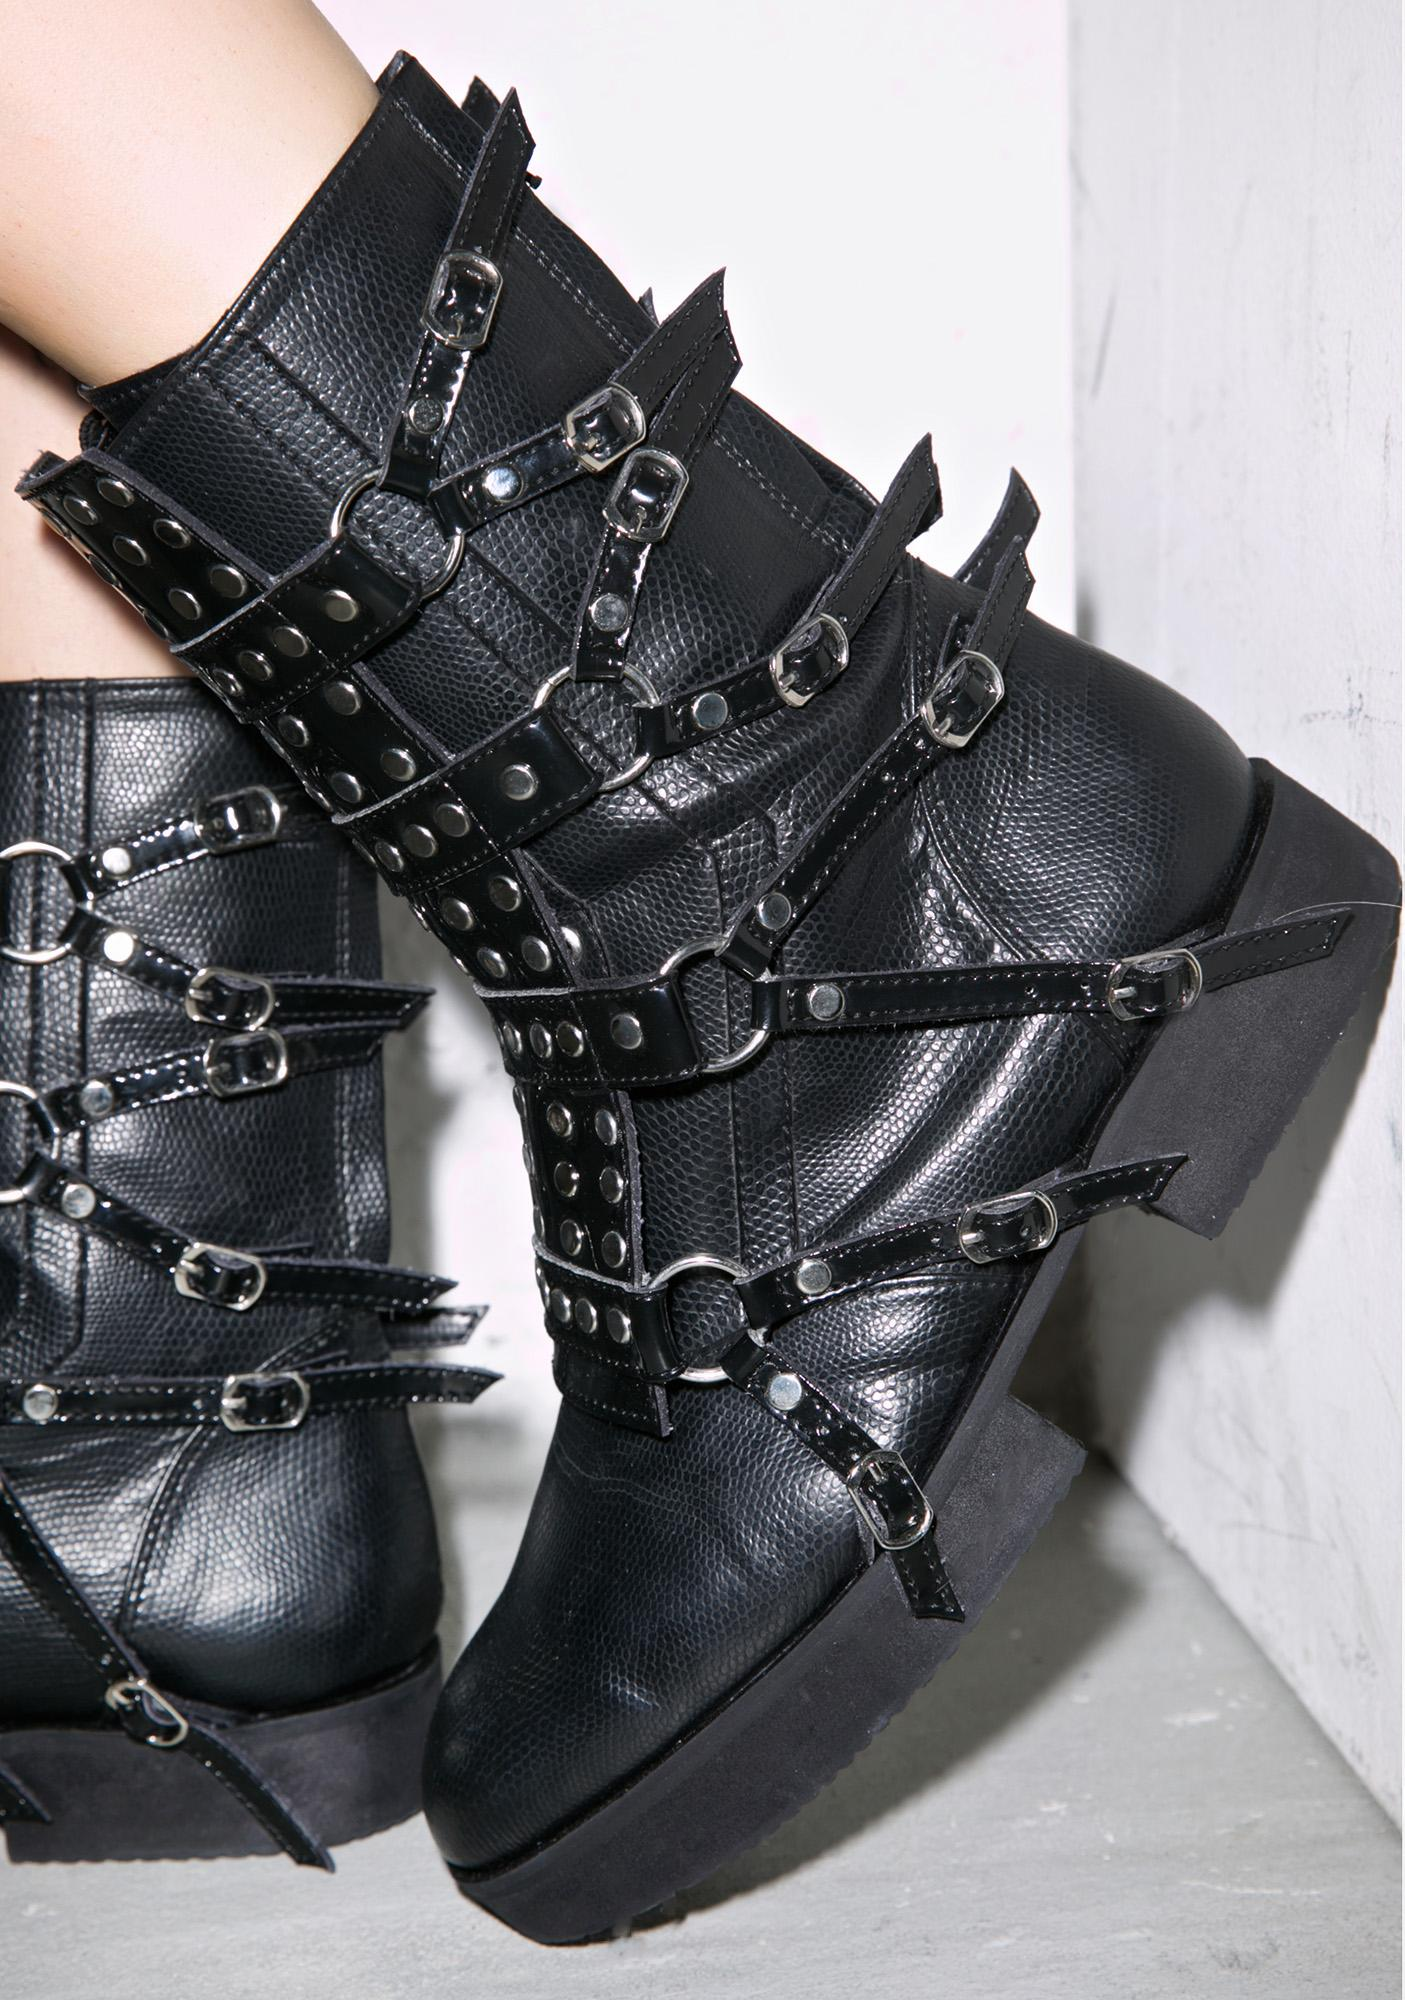 c2a49f8ddd68 Monster Shoes Dystopia Boots